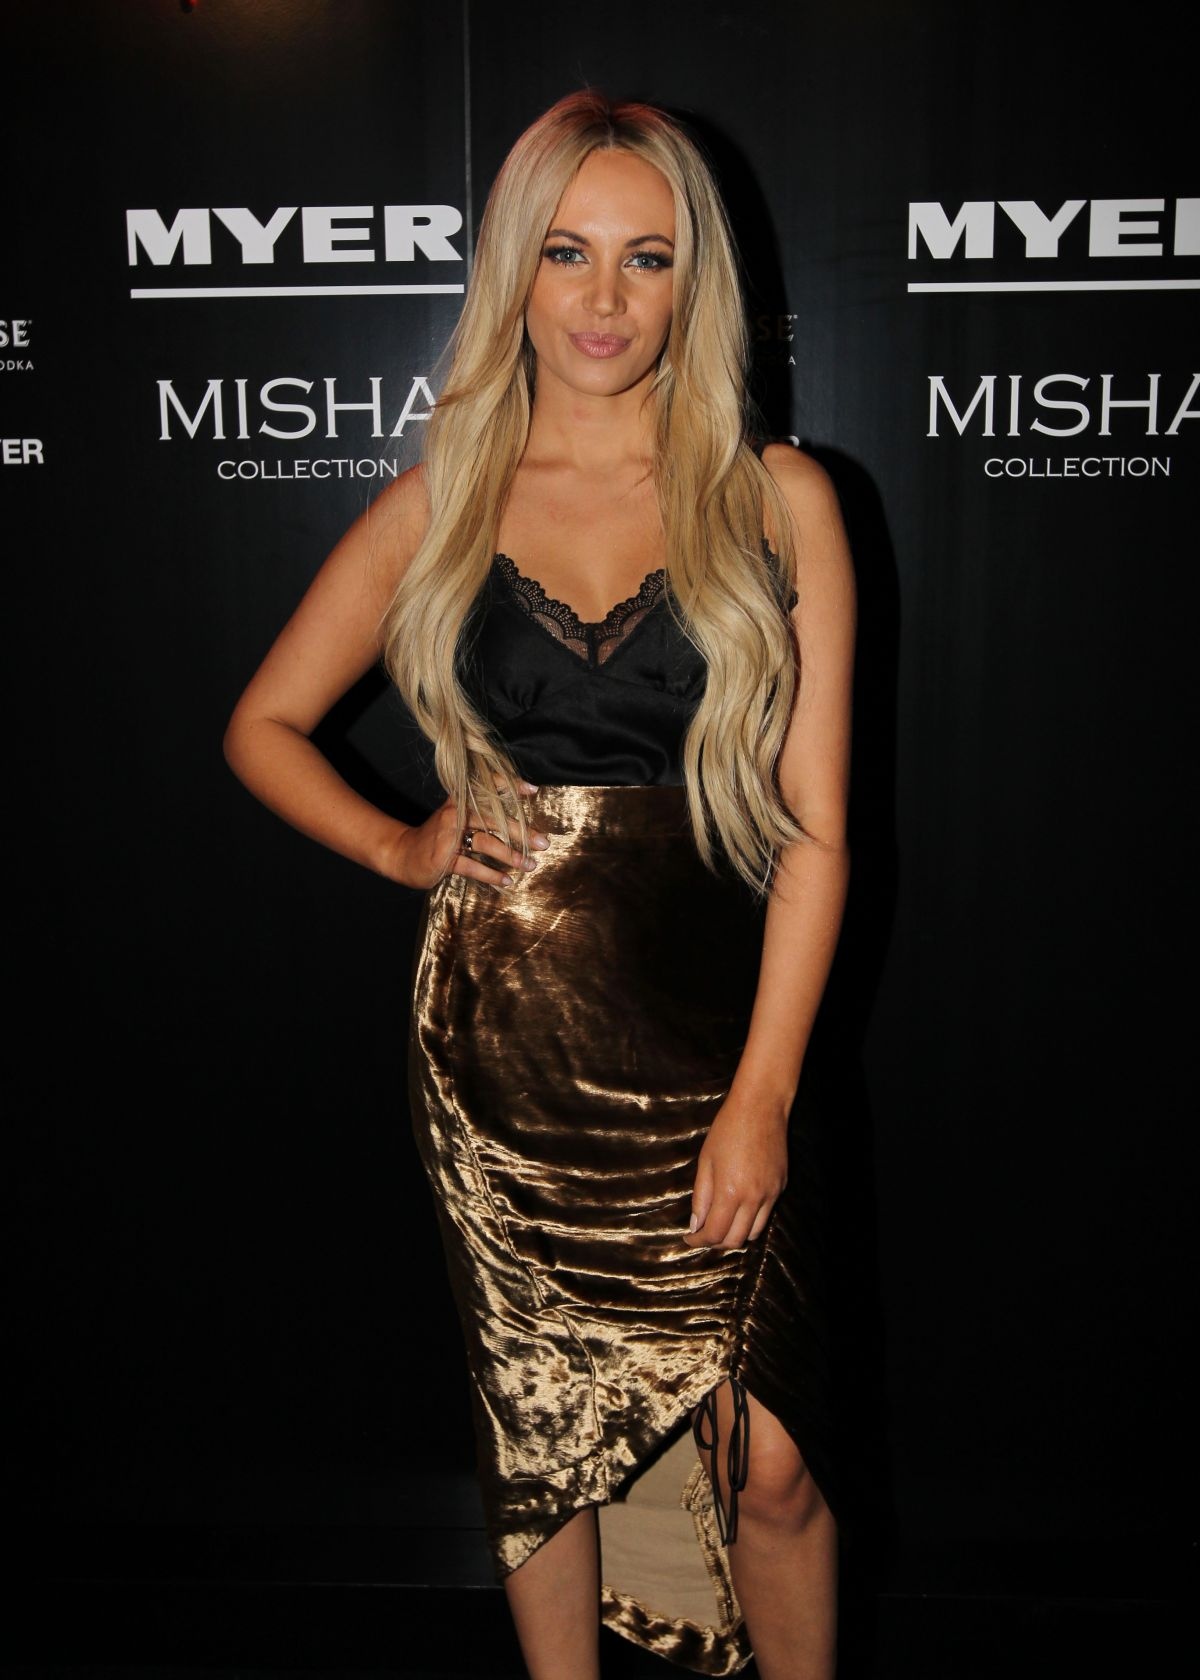 SAMANTHA JADE at Misha x Myer Party in Sydney 05/15/2017